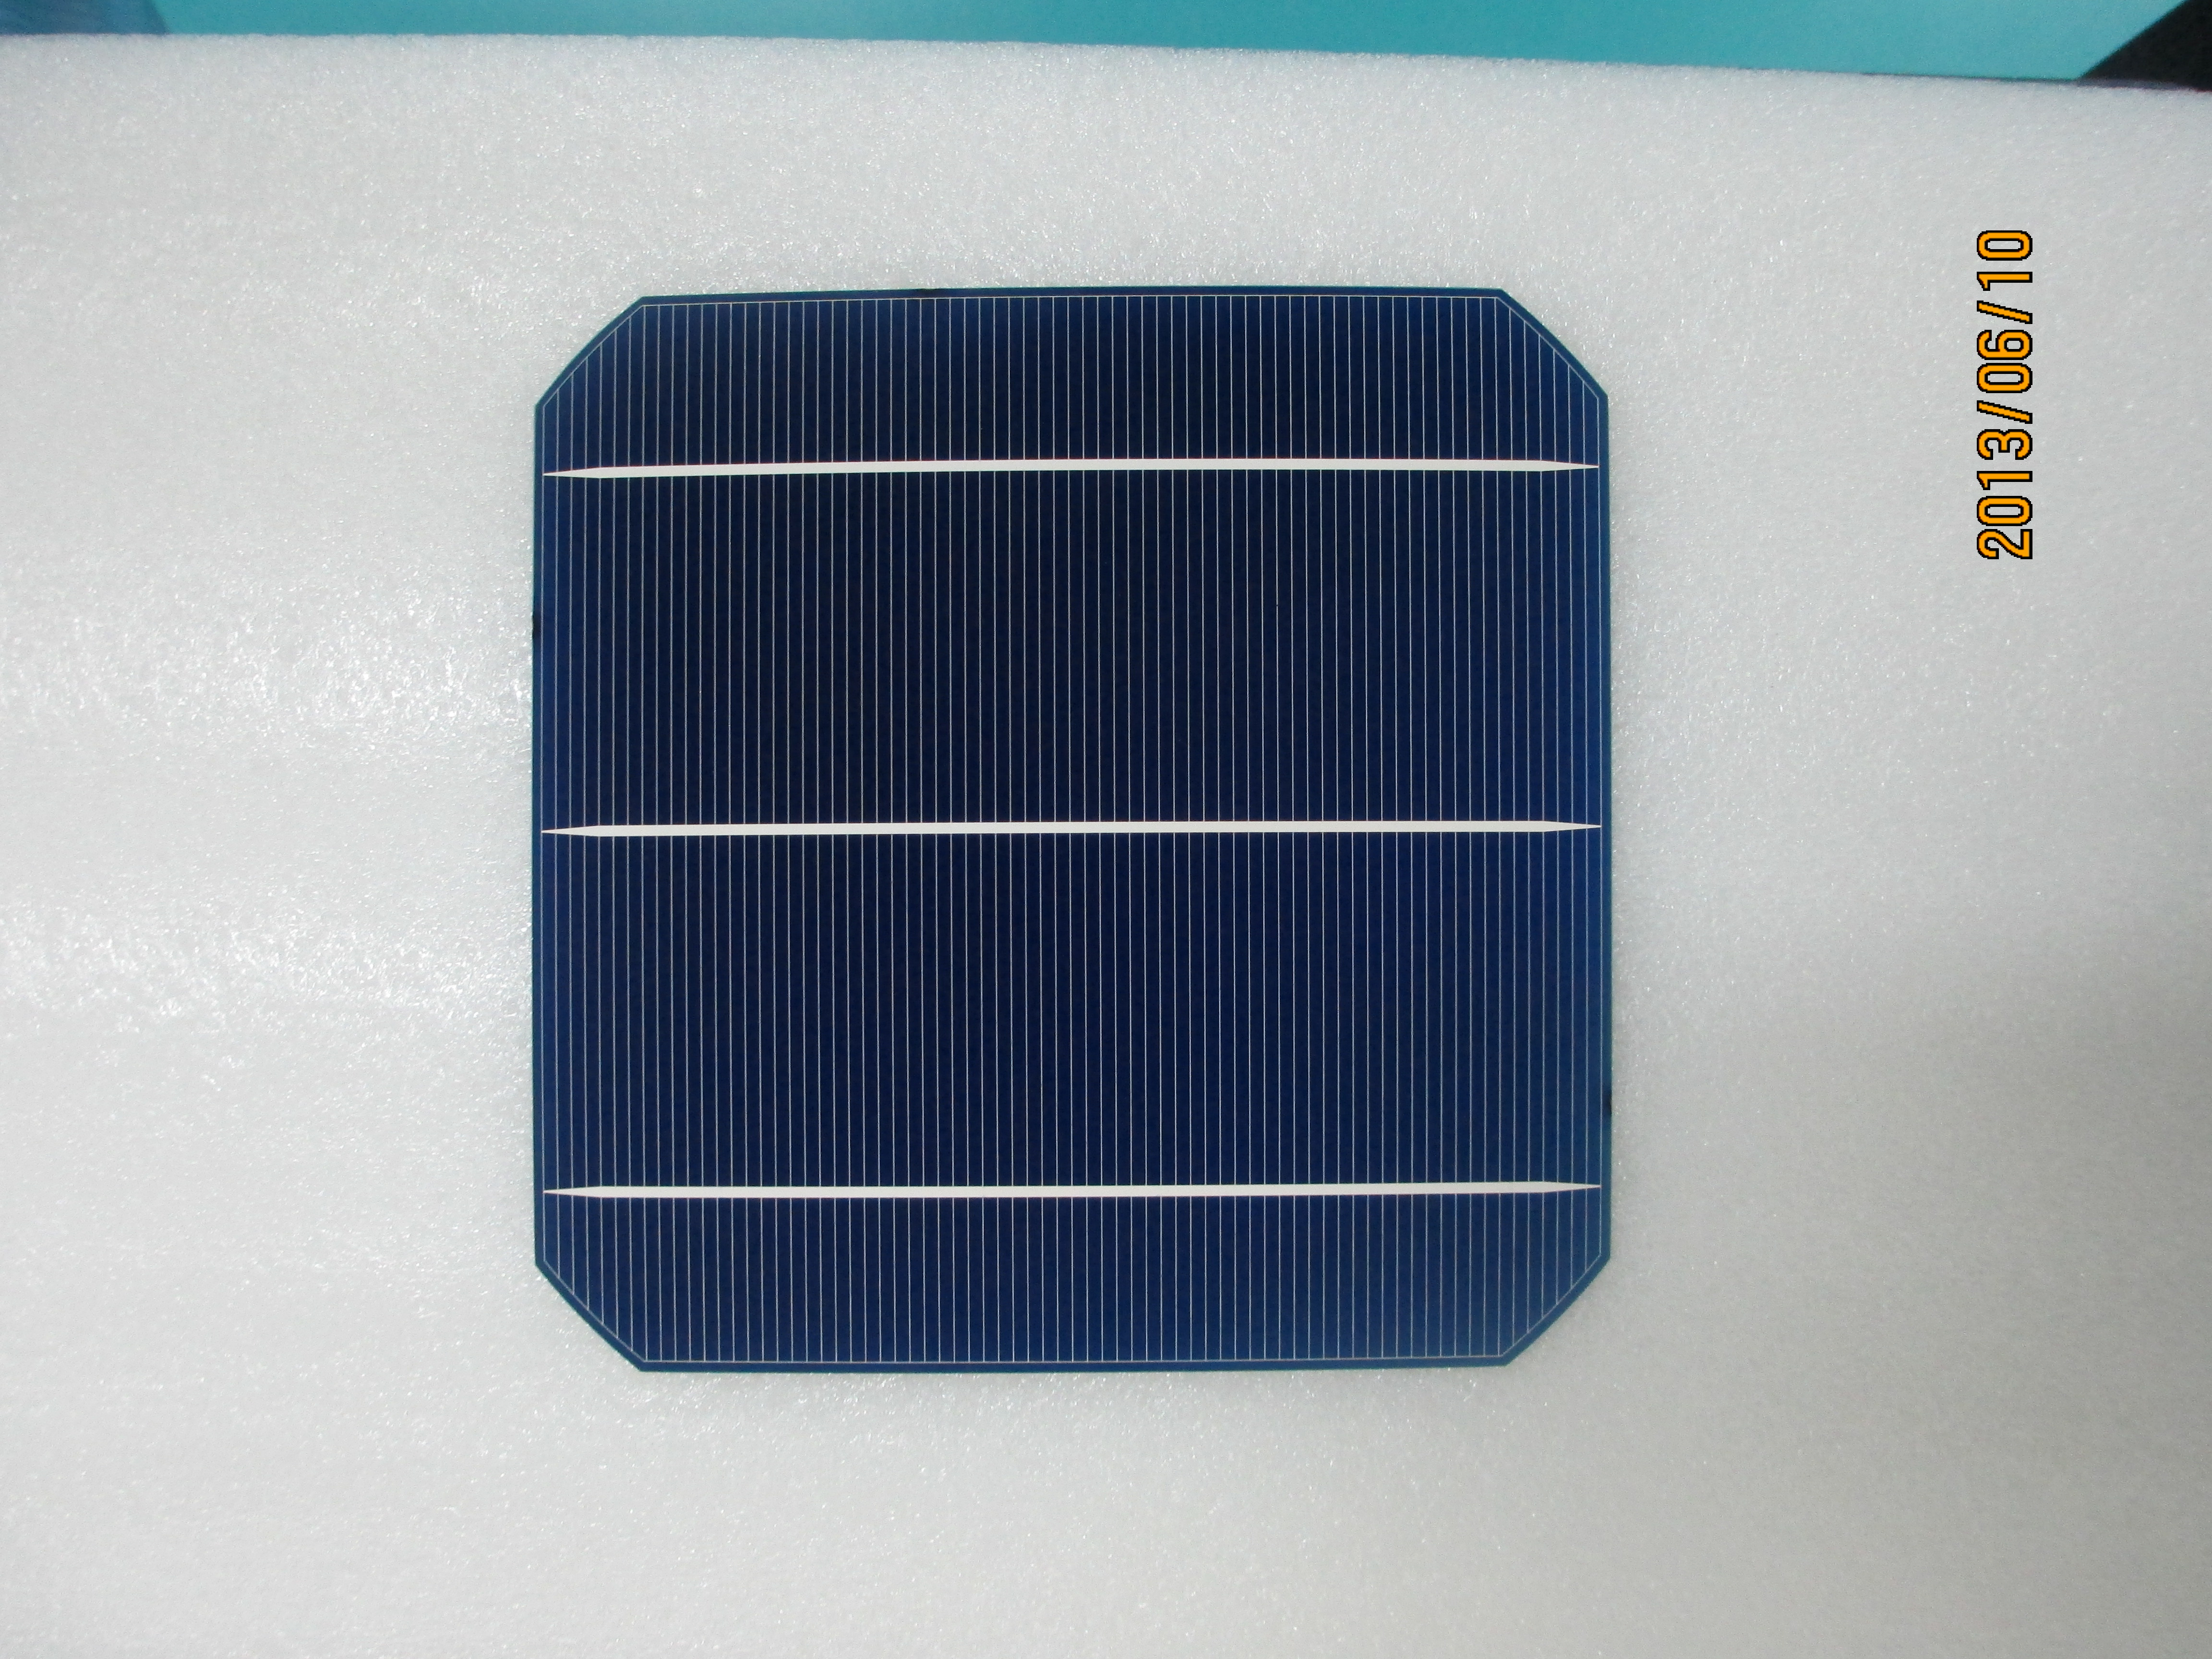 156*156MM MONOCRYSTAL SOLAR CELL WITH HIGH EFFICIENCY